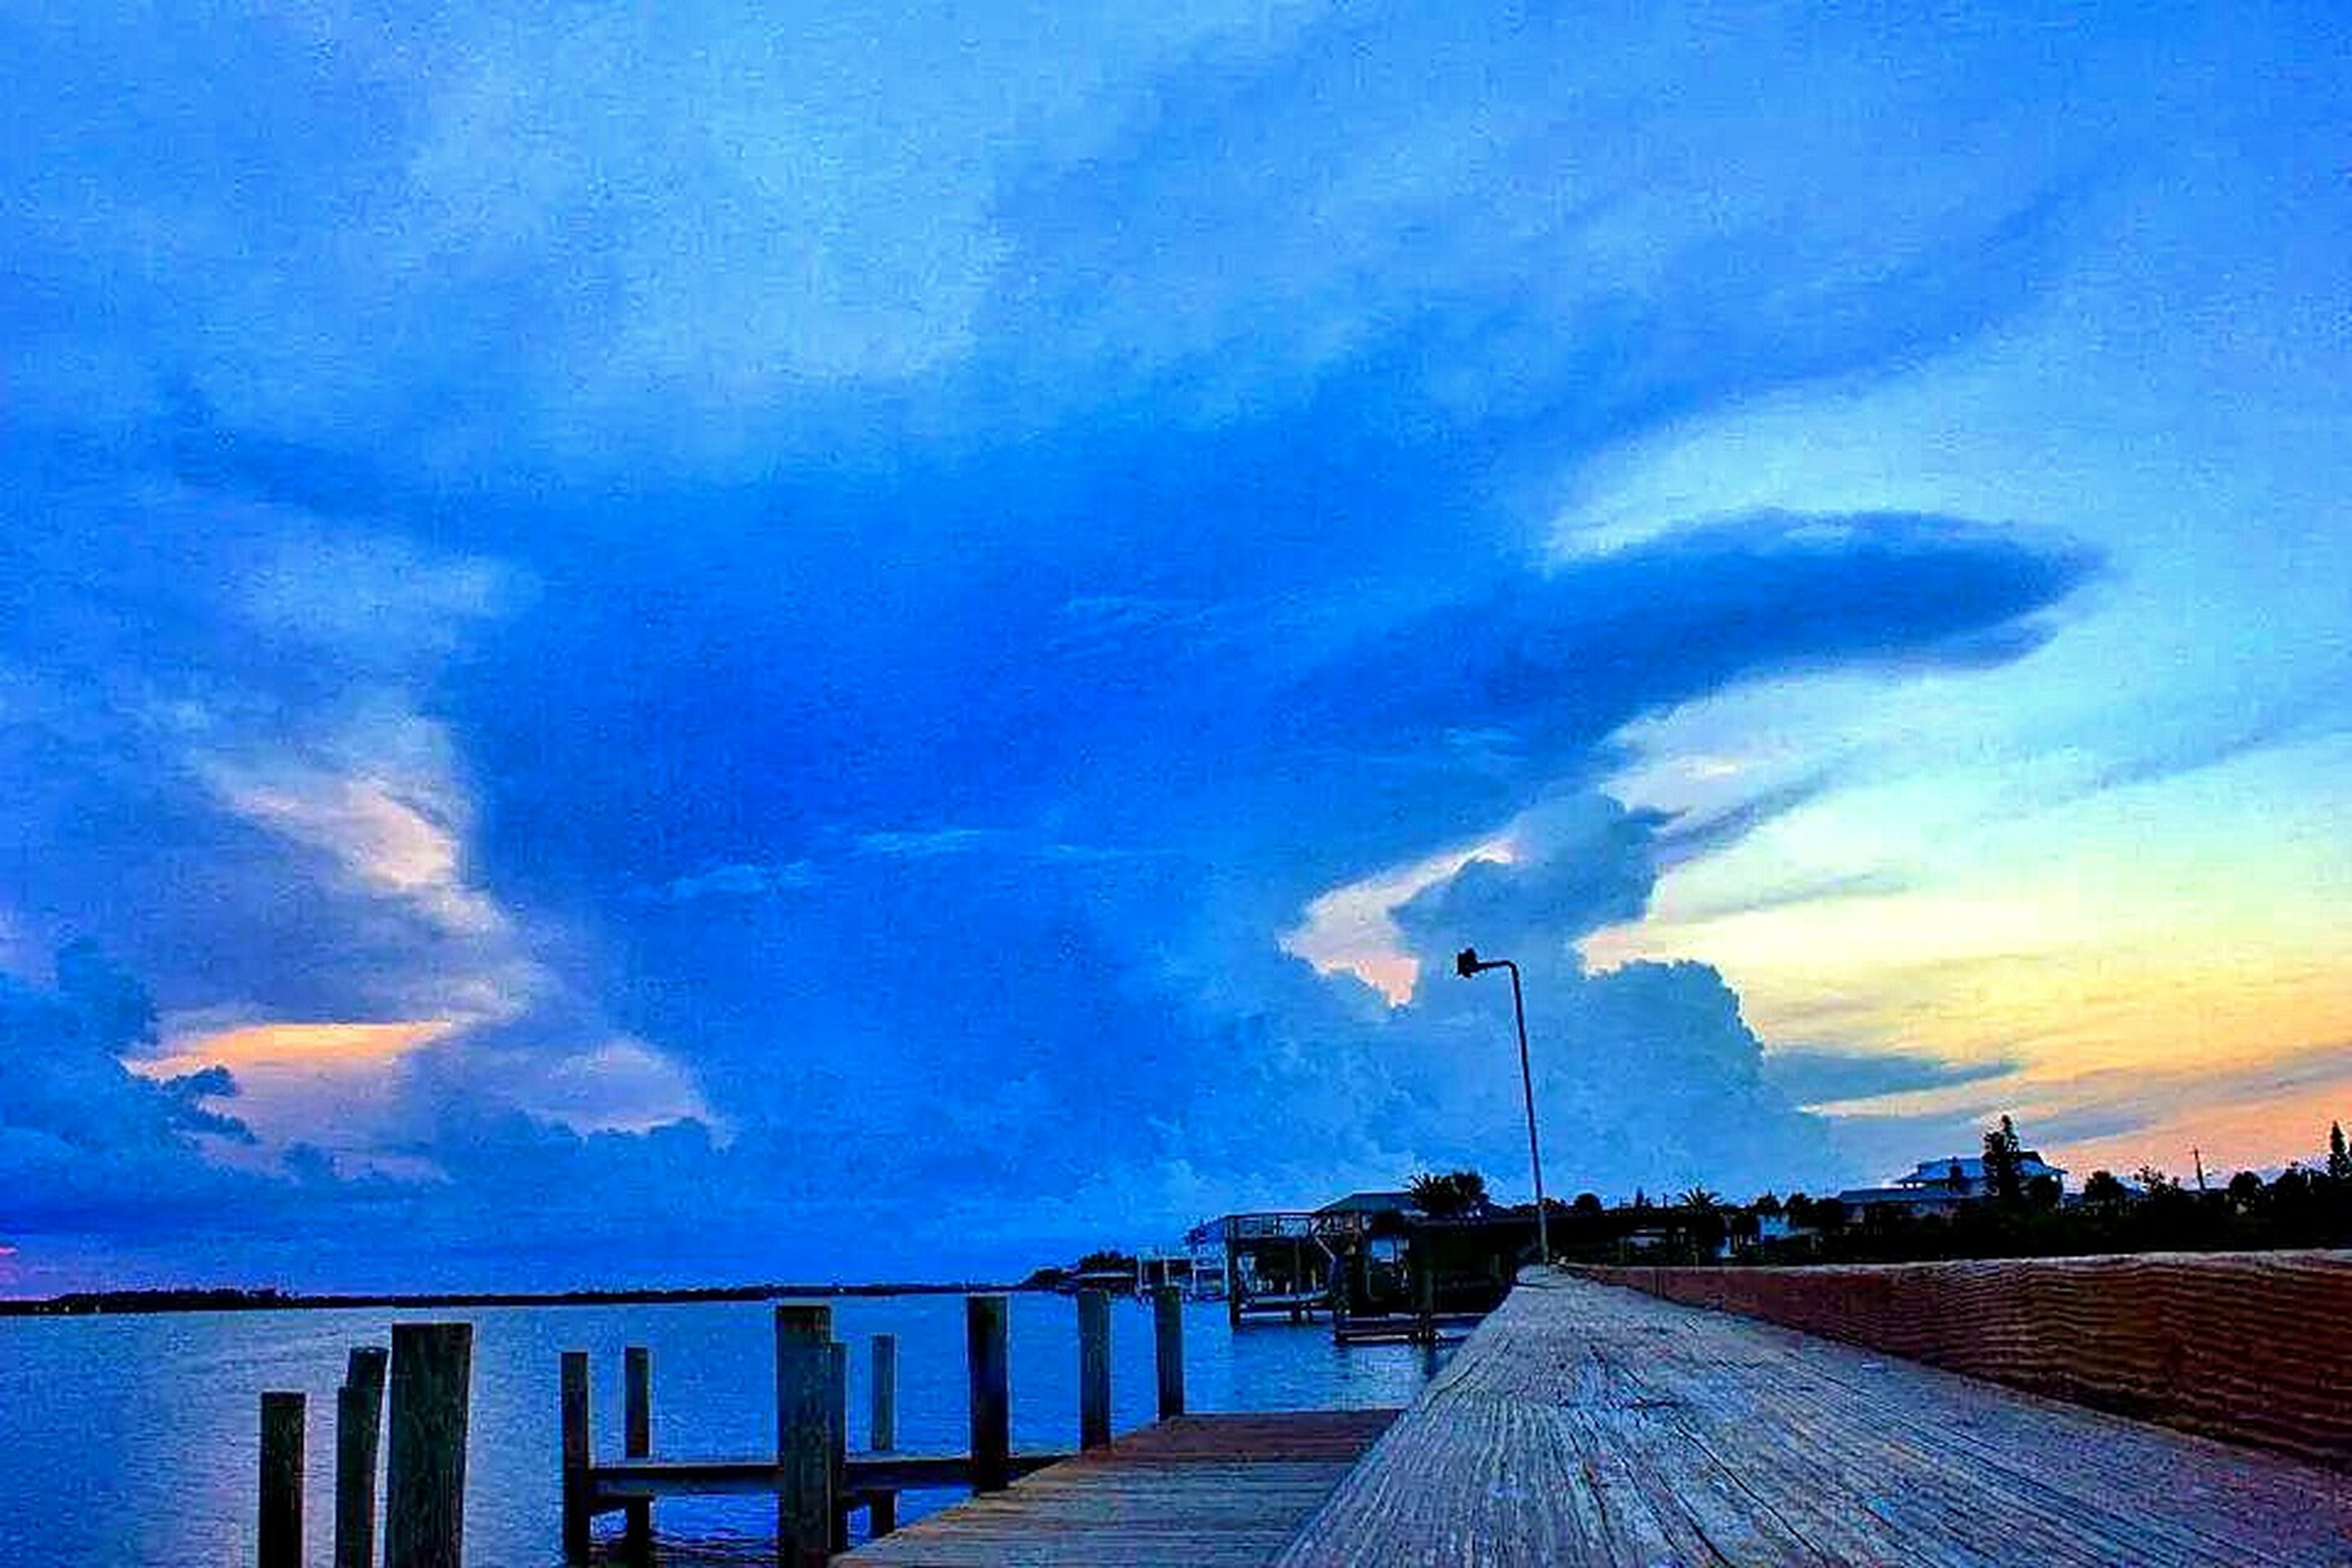 sky, the way forward, cloud - sky, blue, built structure, railing, architecture, cloud, water, diminishing perspective, tranquility, building exterior, sunset, cloudy, nature, scenics, sea, beauty in nature, tranquil scene, pier